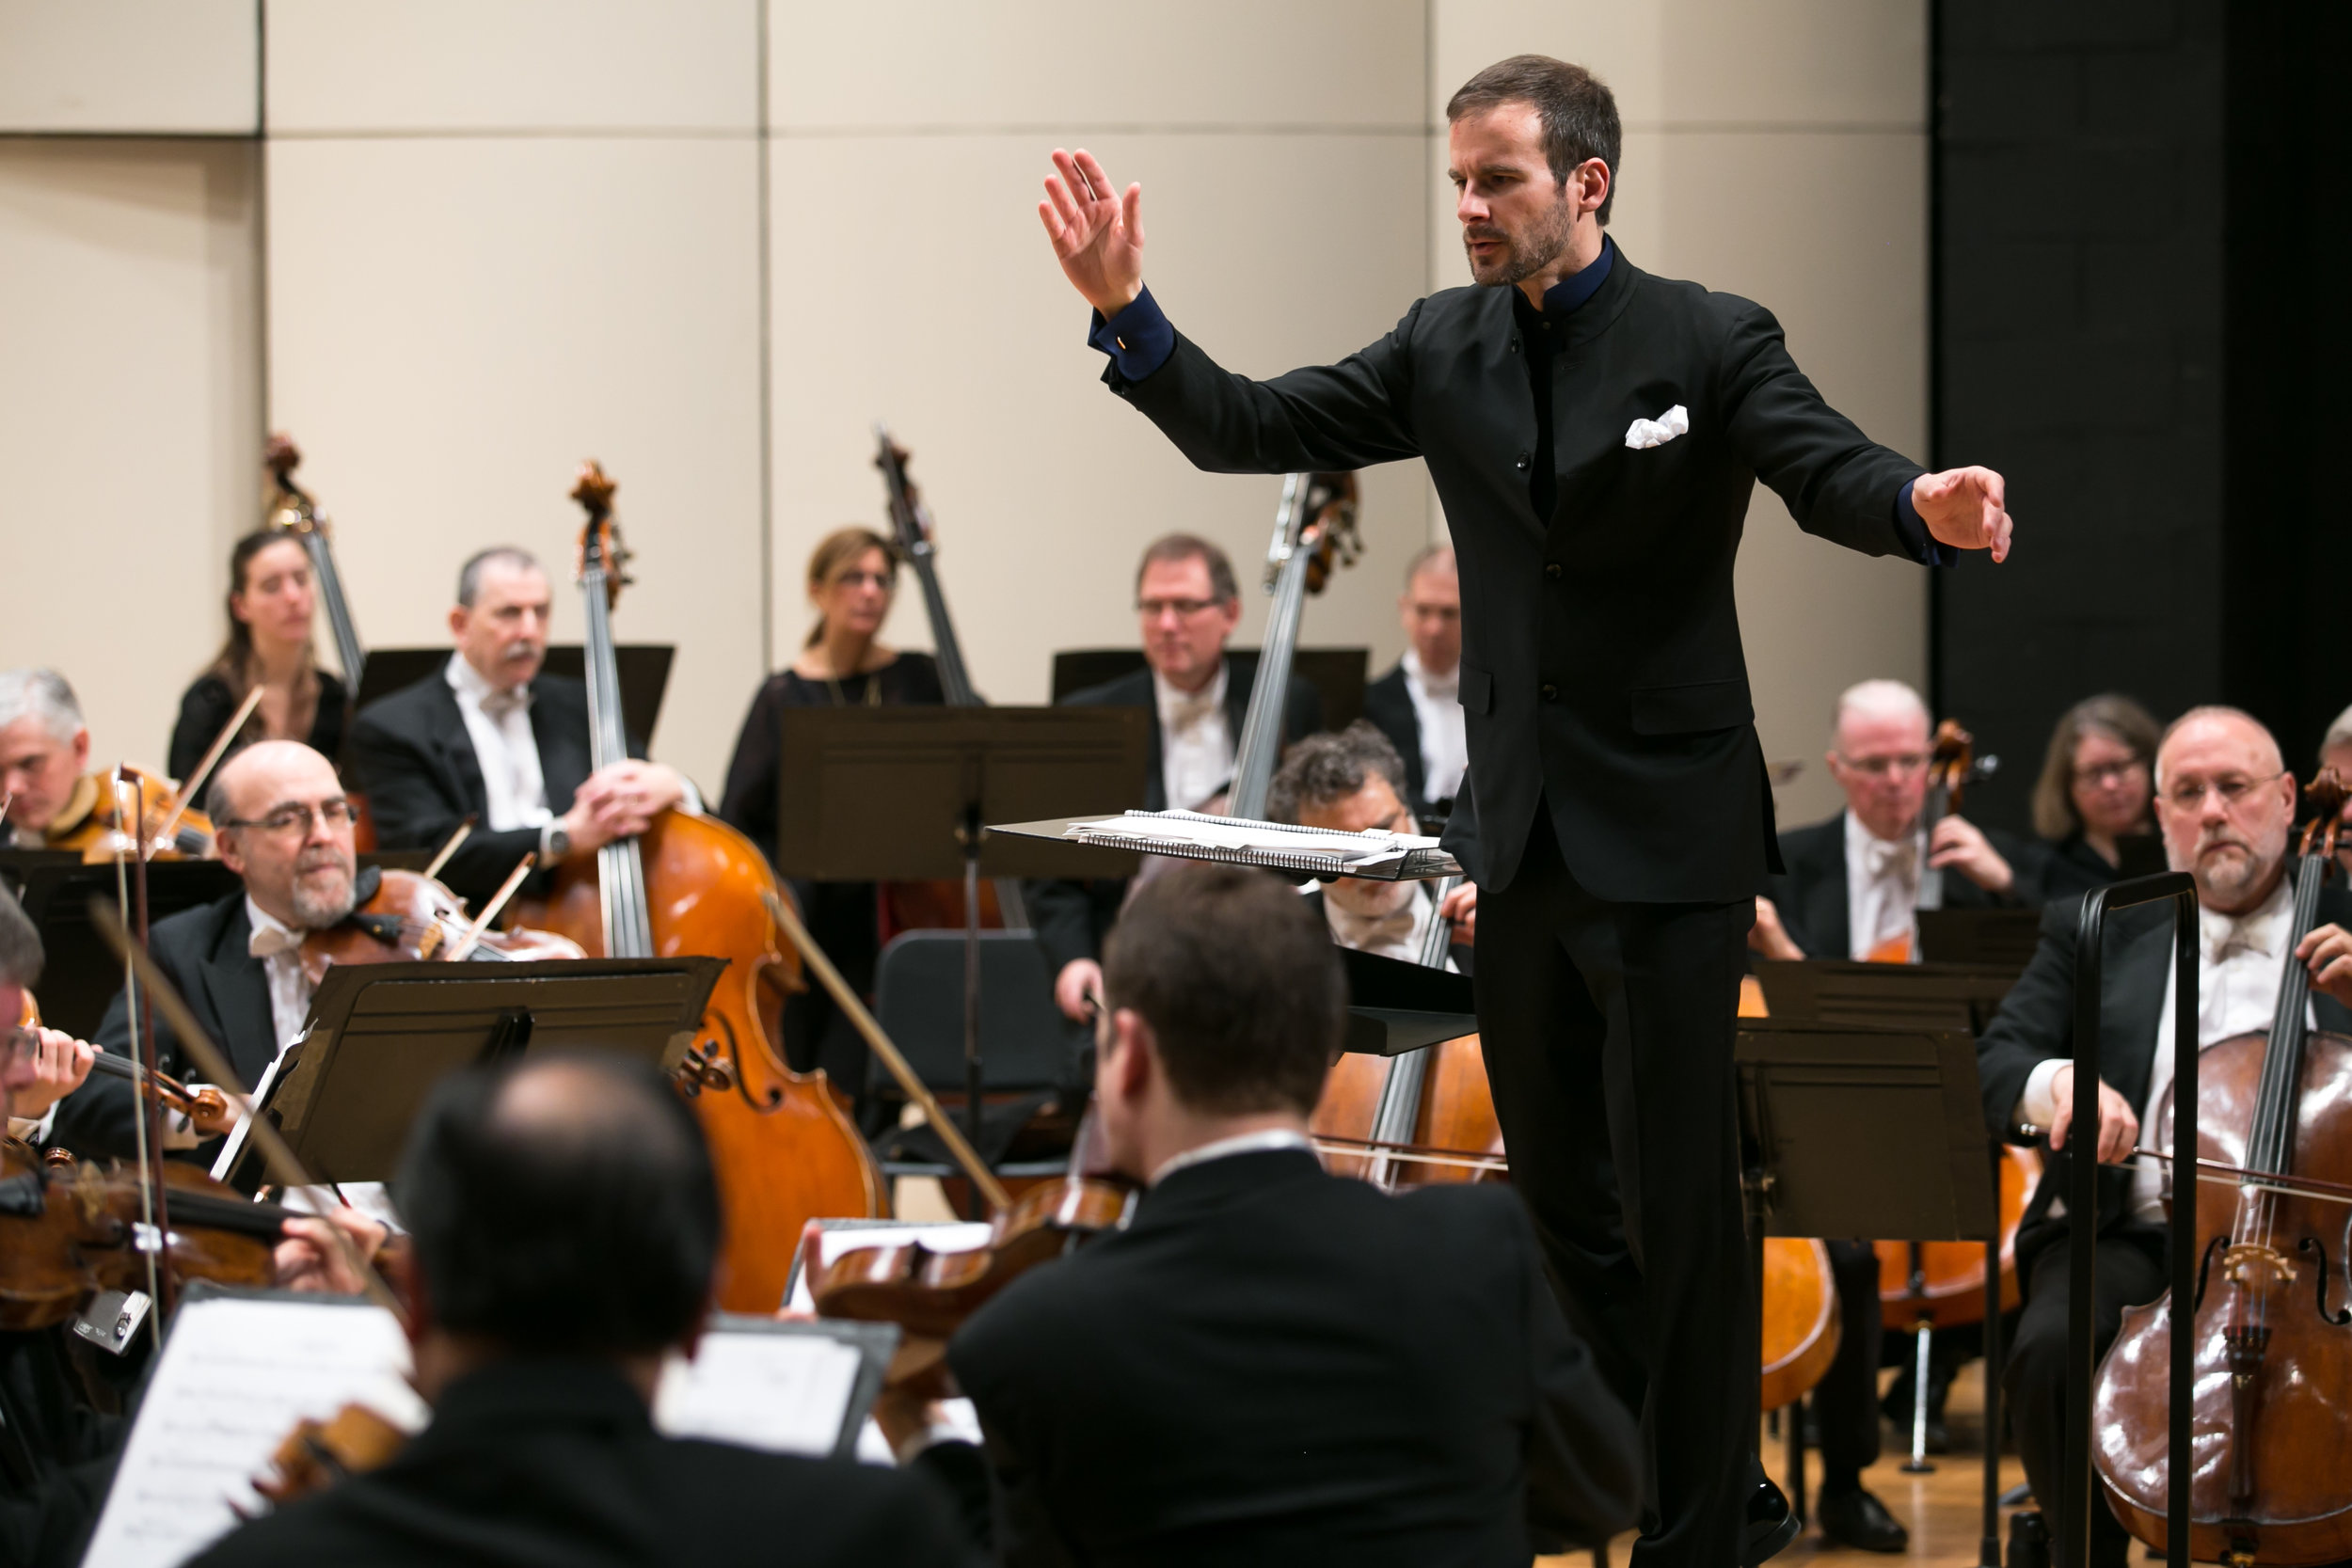 1) Conduct the Orchestra